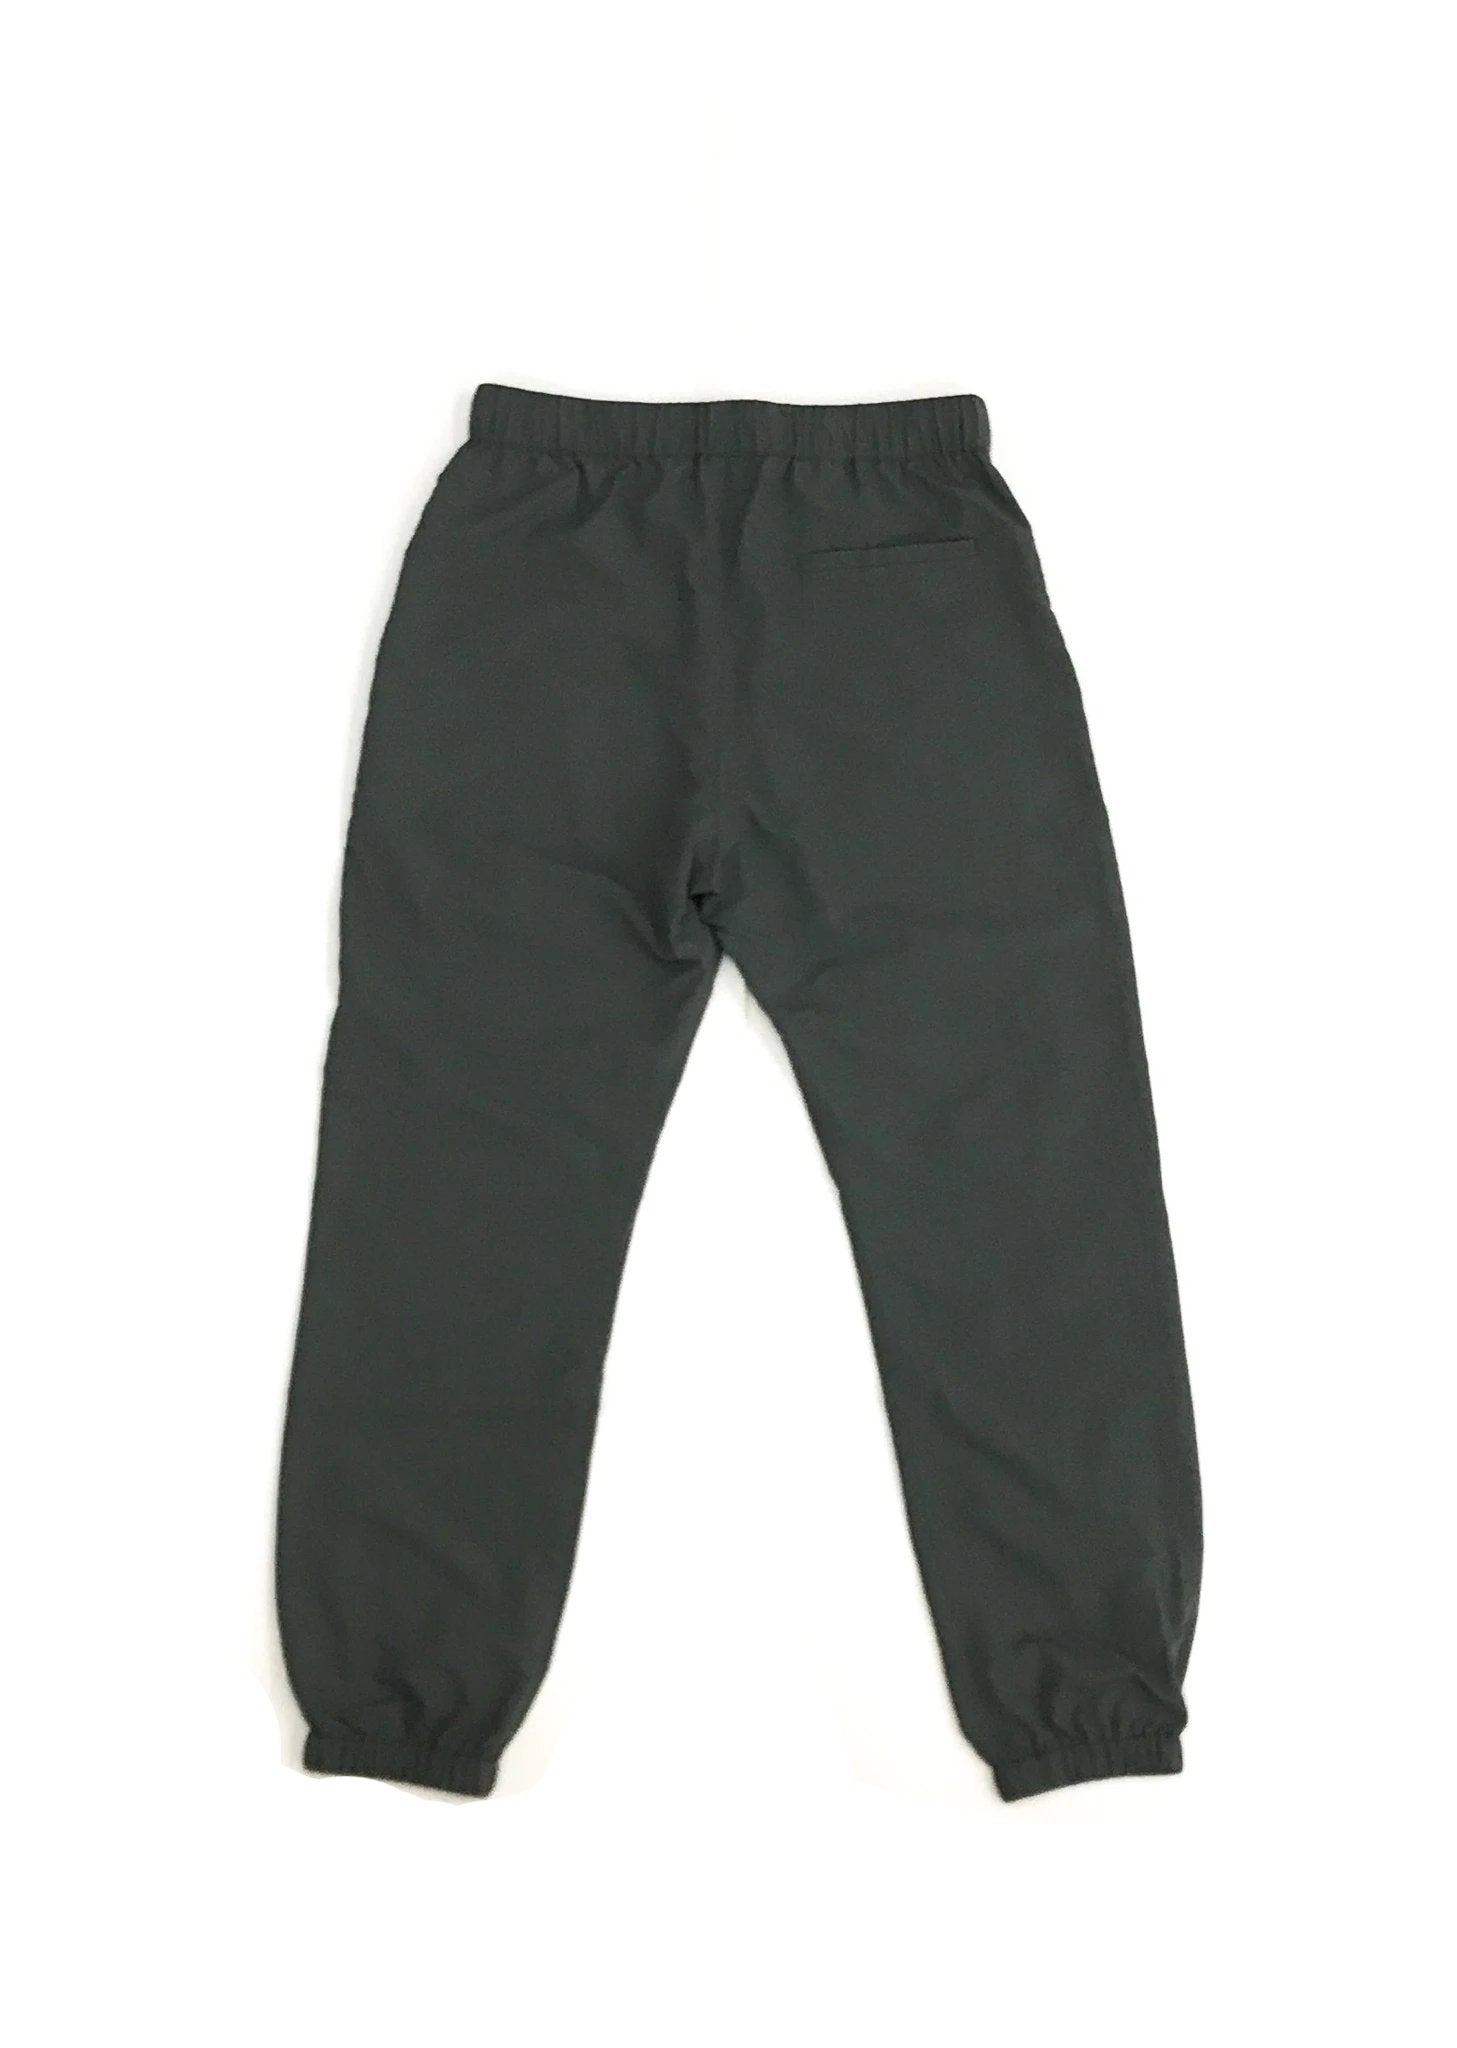 GREI new york (グレイ) / TRACK PANTS 4-PLY DWR FINISH CHARCOAL。バック画像。